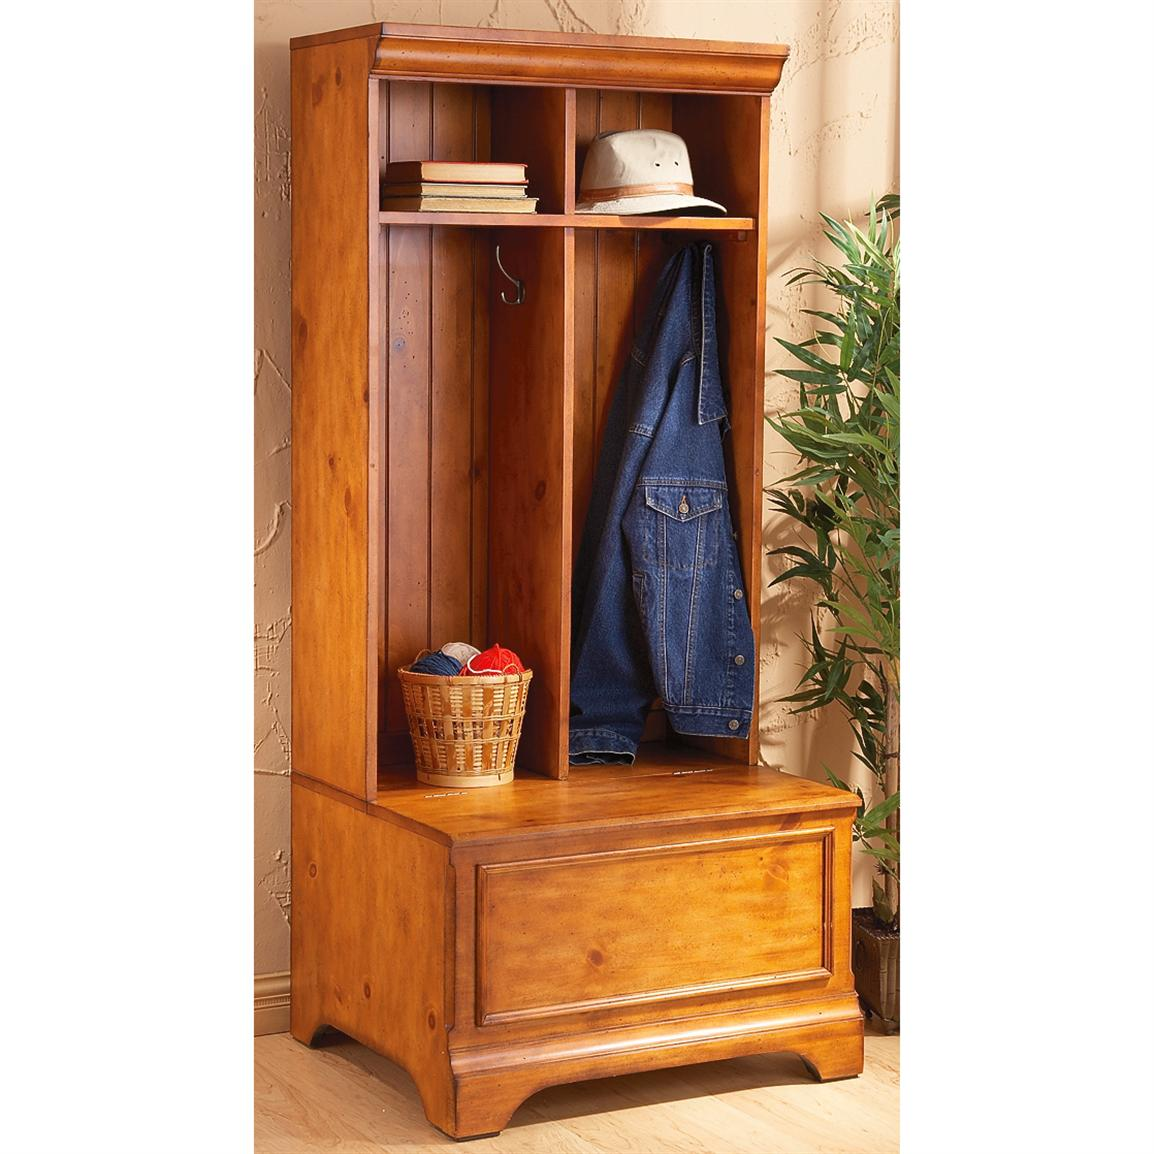 Picture of: Hall Tree Storage Bench Image